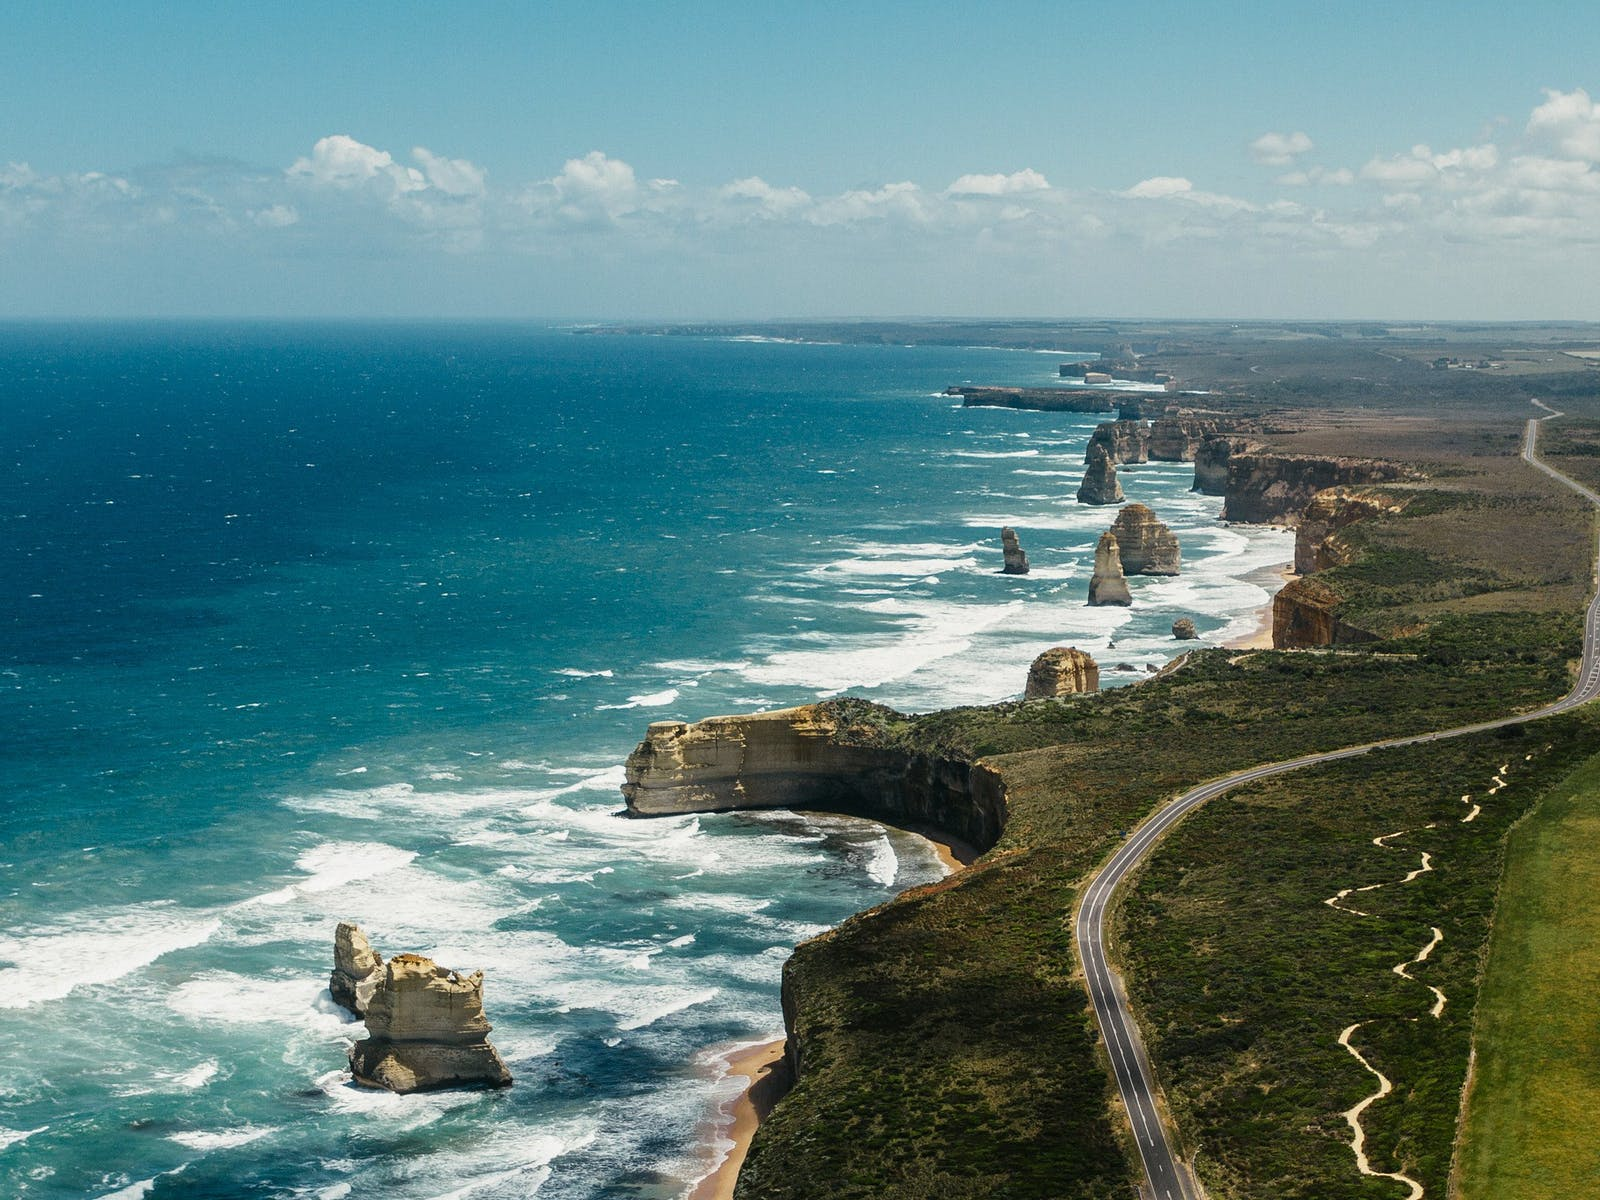 Aerial photograph over the 12 Apostles, Great Ocean Road